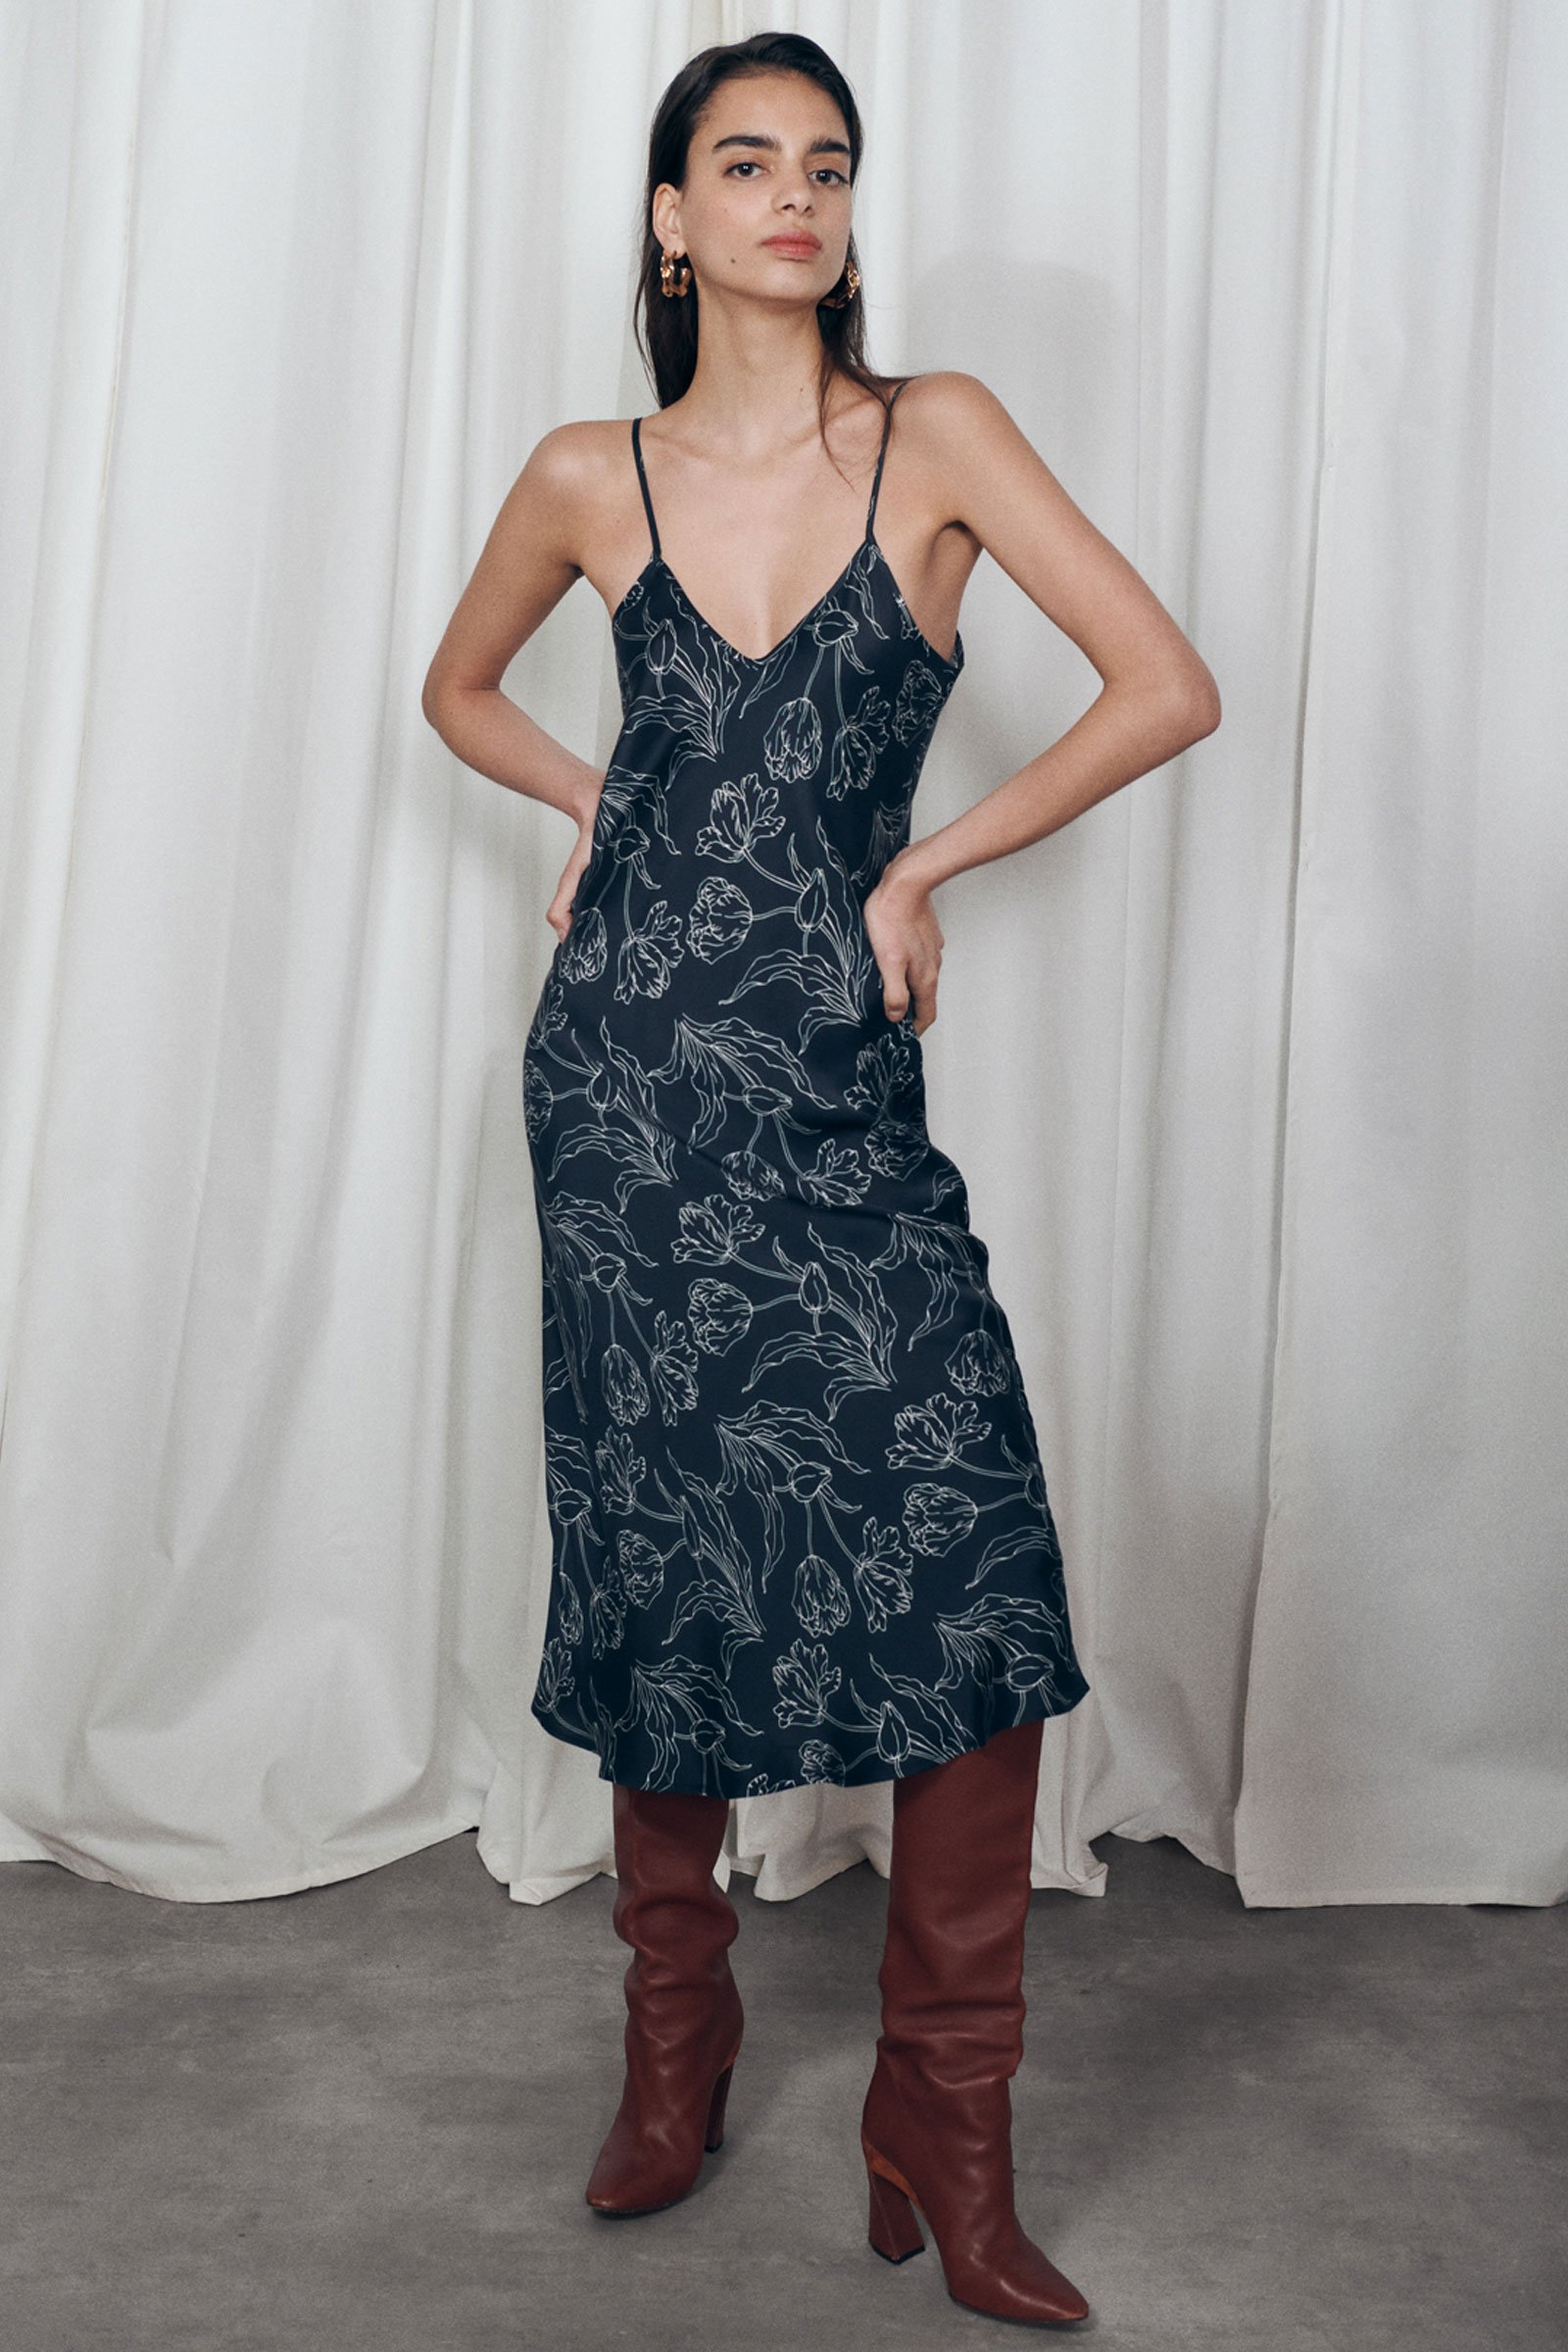 90s Clothing Outfits You Can Buy Now Silk Laundry 90s Silk Slip Dress - Black Tulips $285.00 AT vintagedancer.com